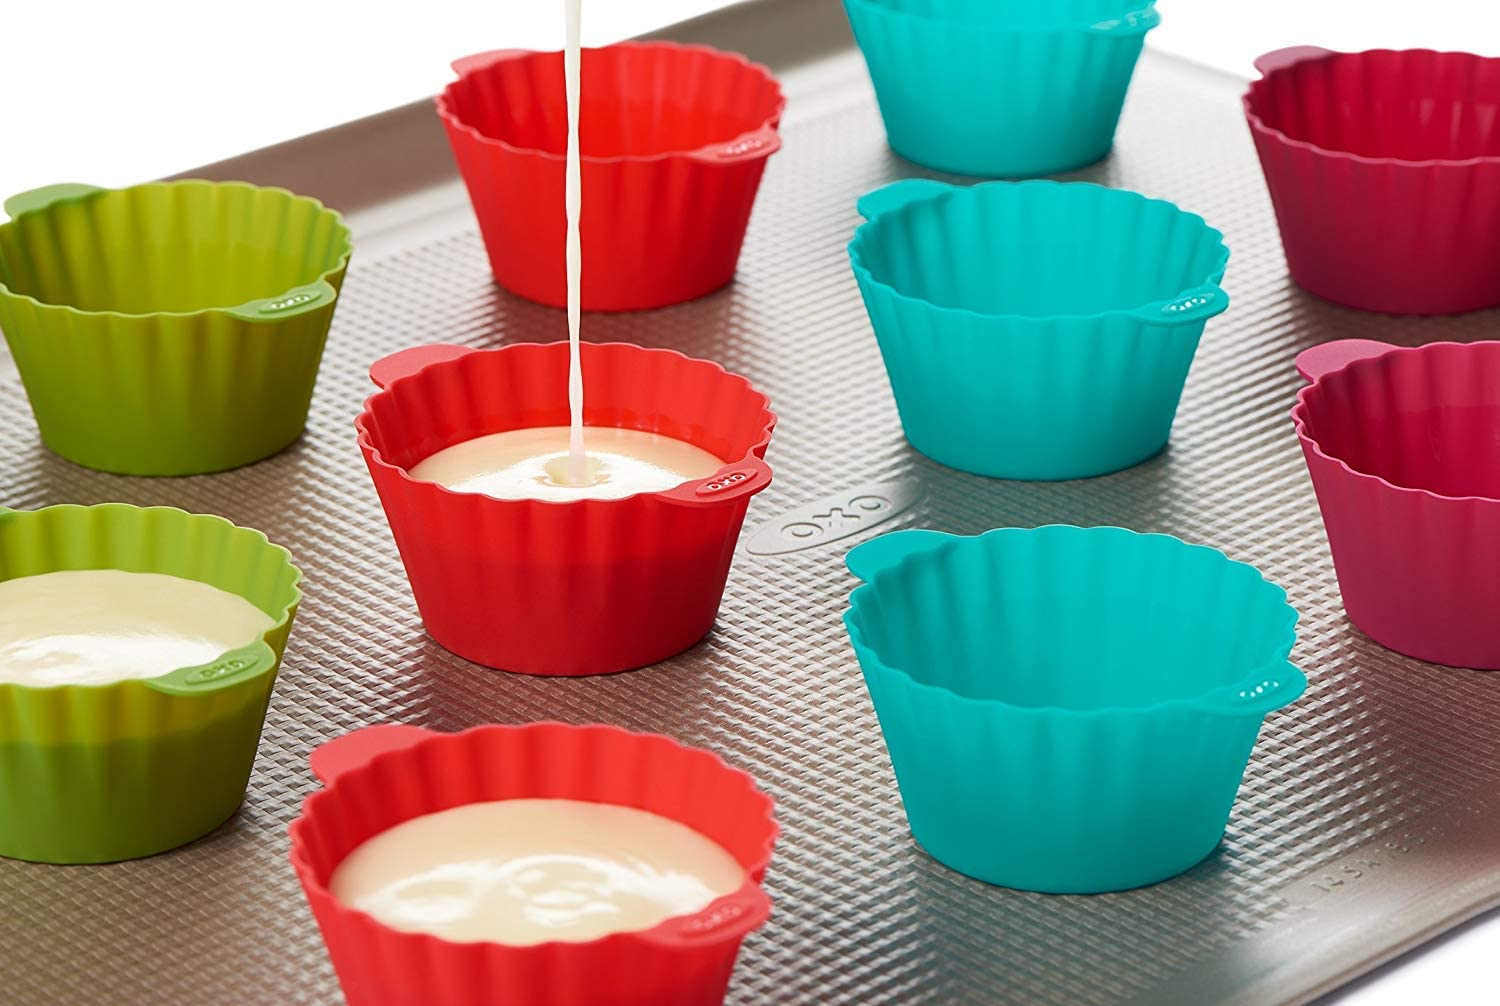 OXO Good Grips Reusable Silicone Baking Cups 24 Pack